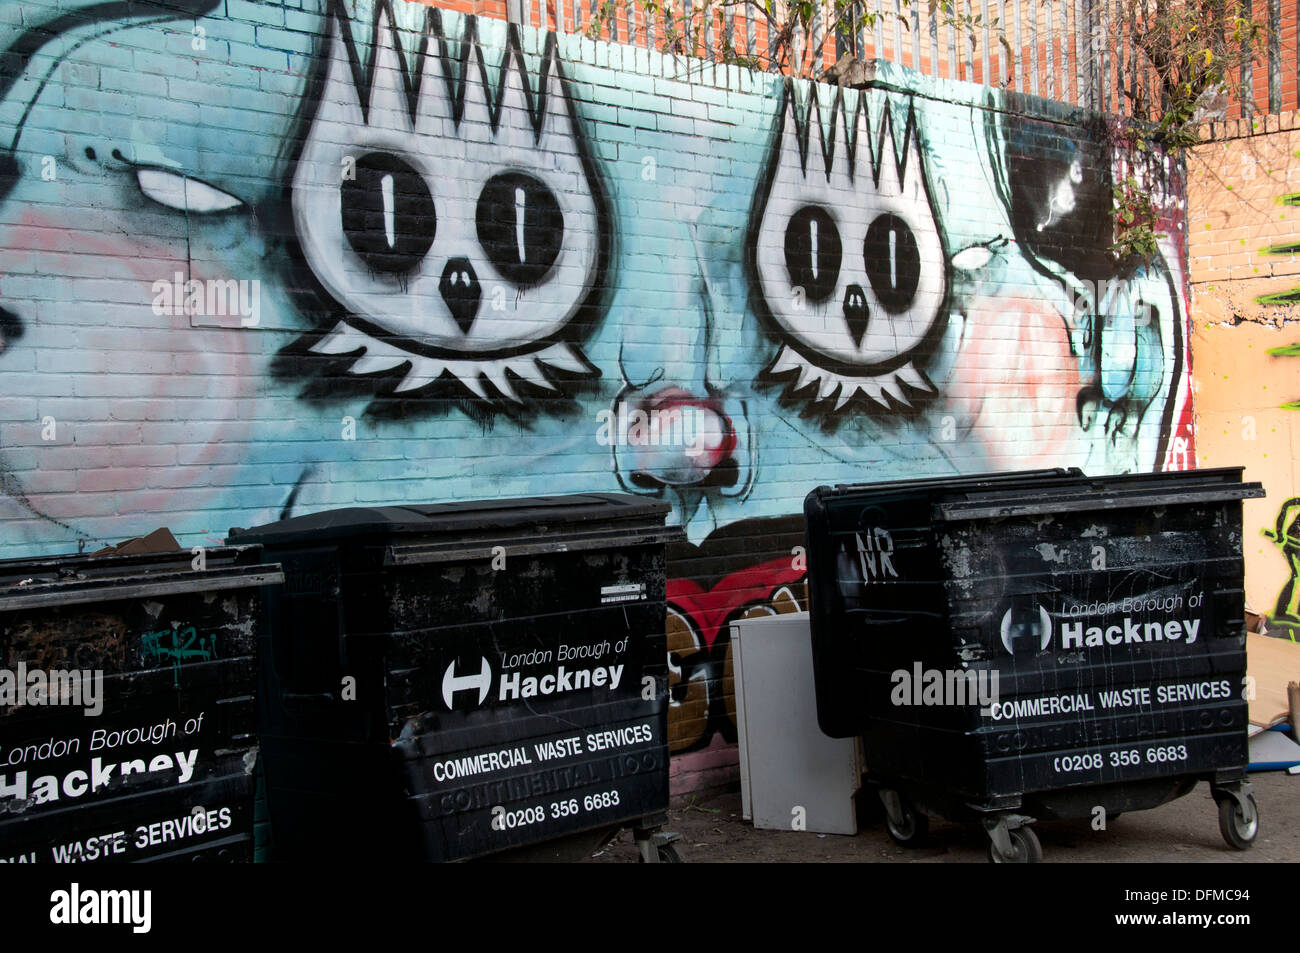 Hackney, London 2013. Graffiti and rubbish bins - Stock Image